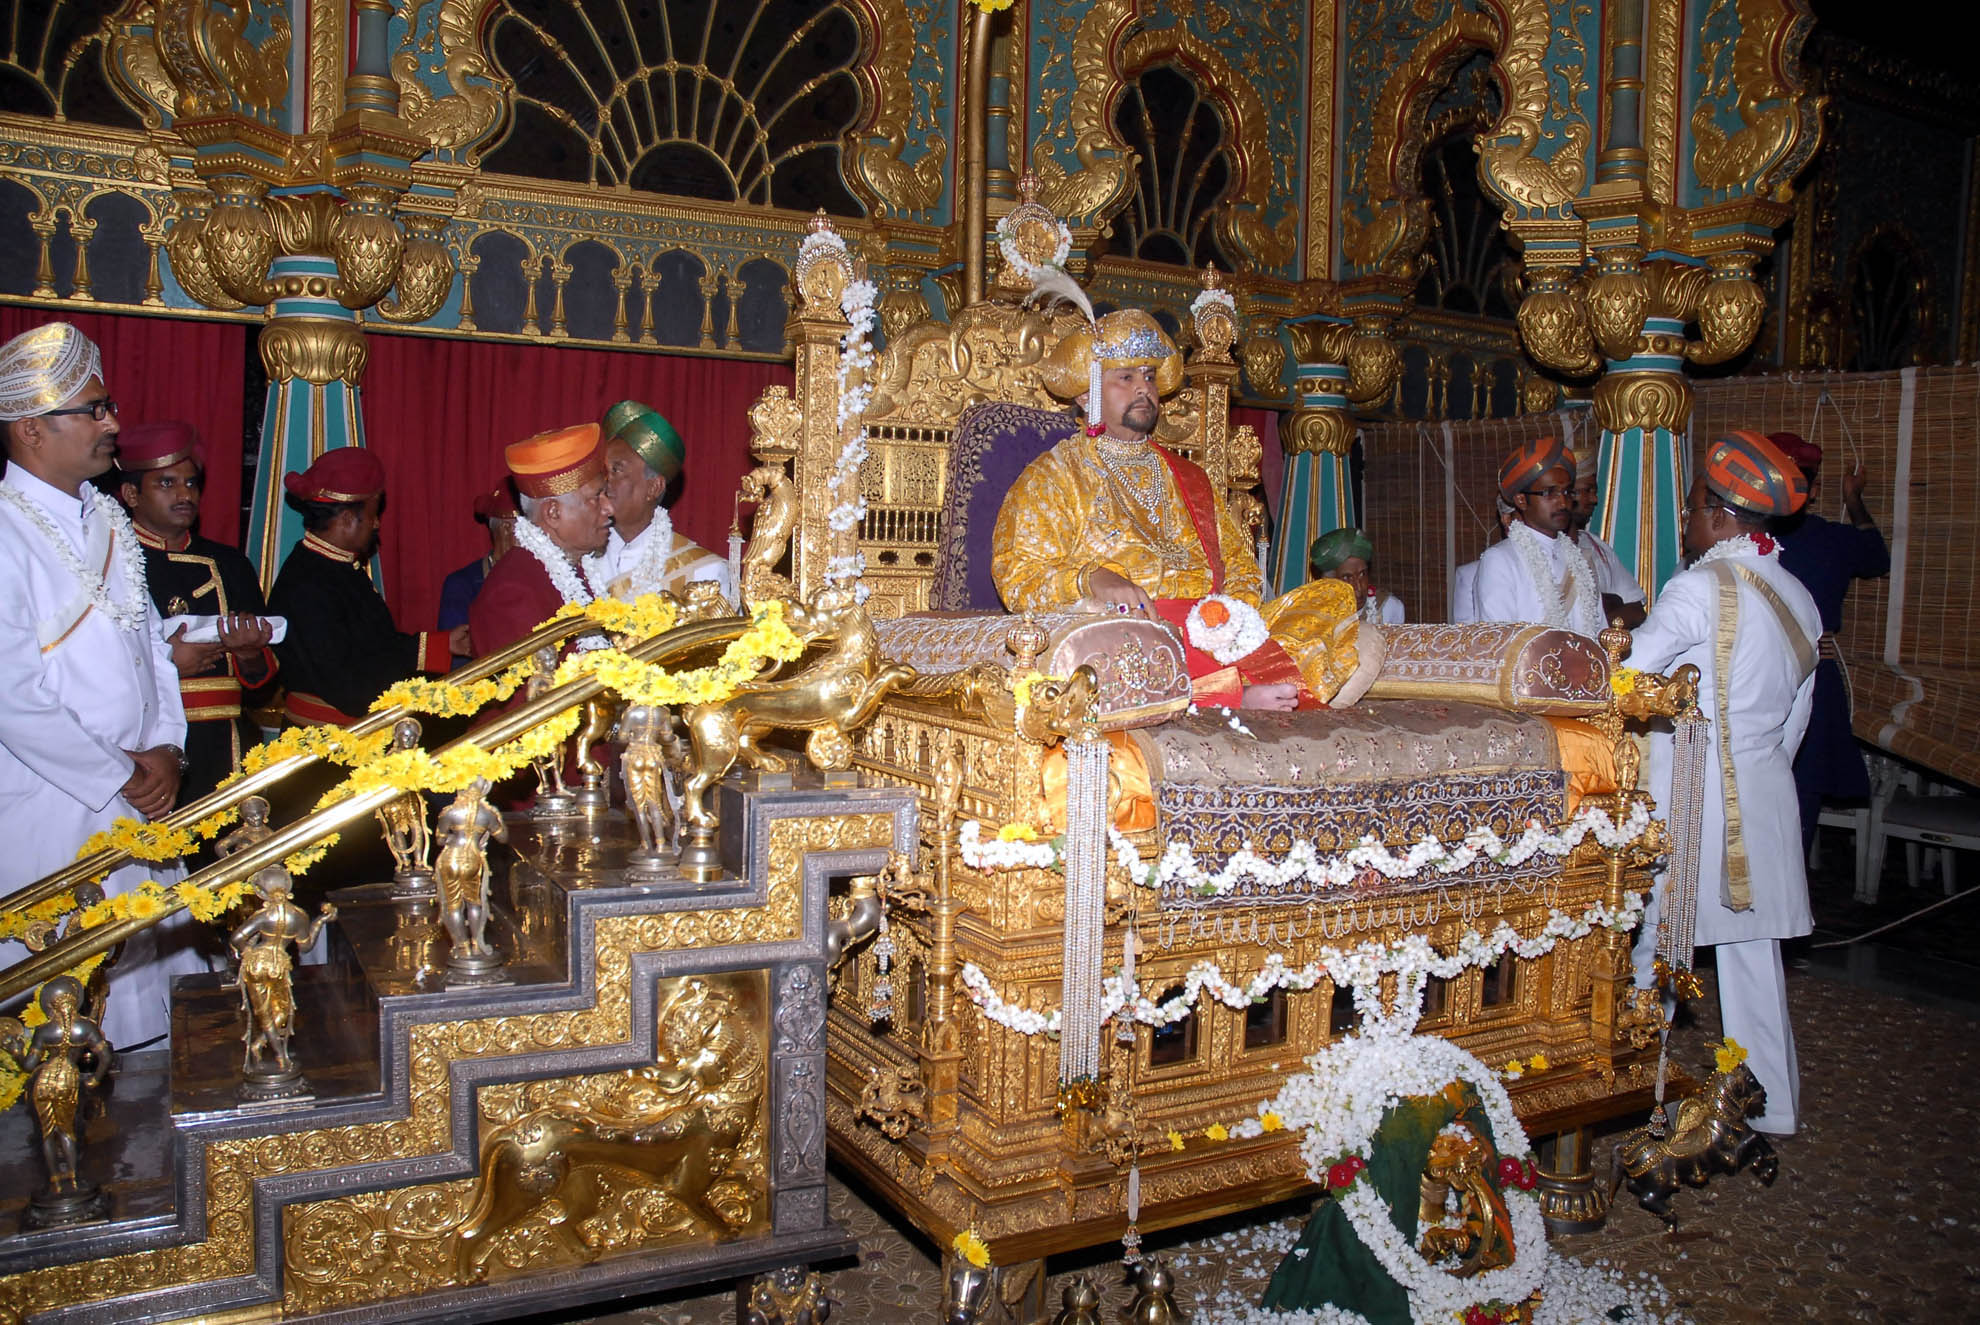 mysore royal family celebration